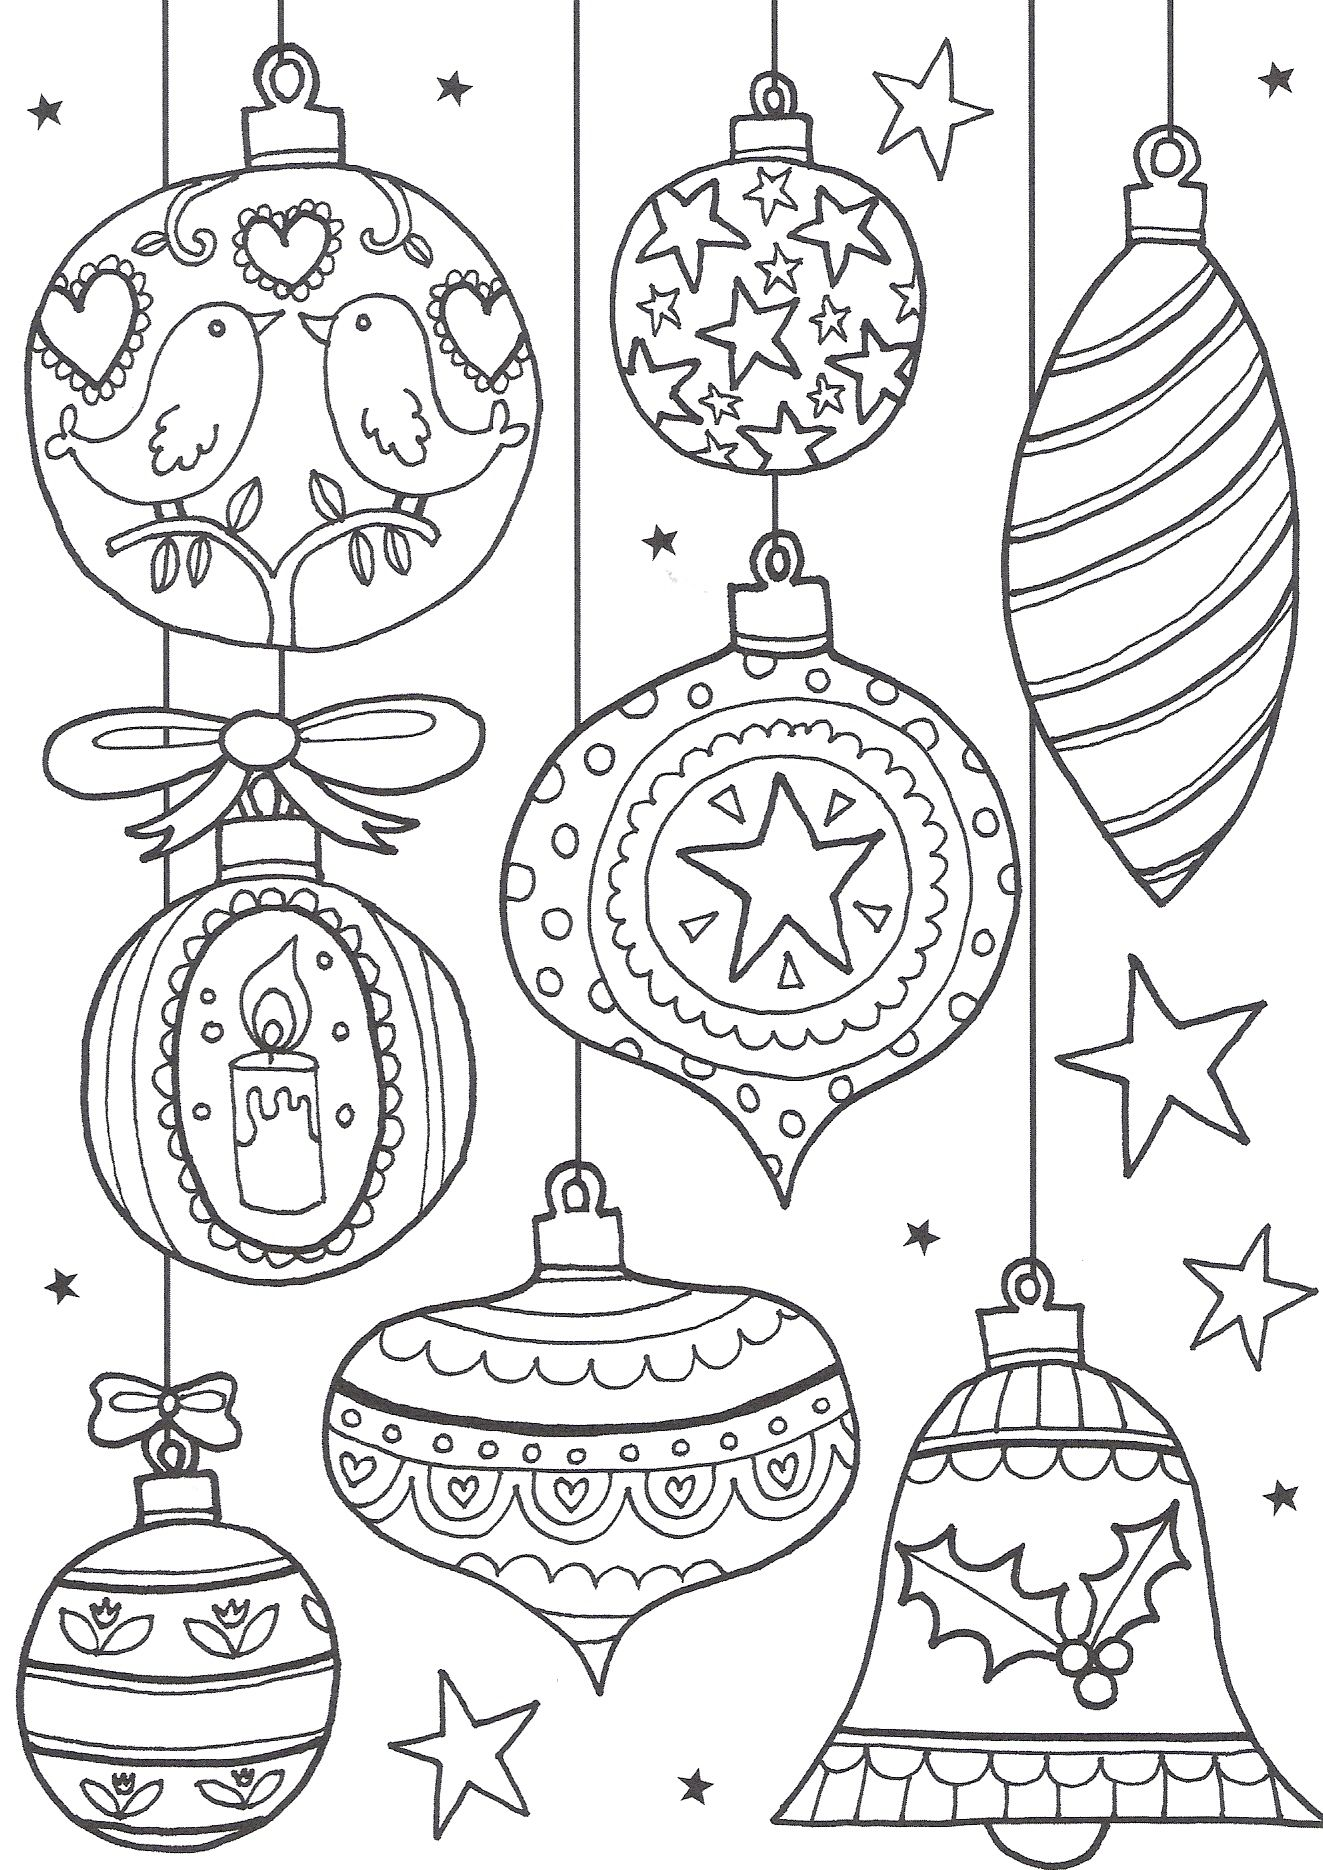 Christmas Coloring Pages In Pdf With Free Colouring For Adults The Ultimate Roundup